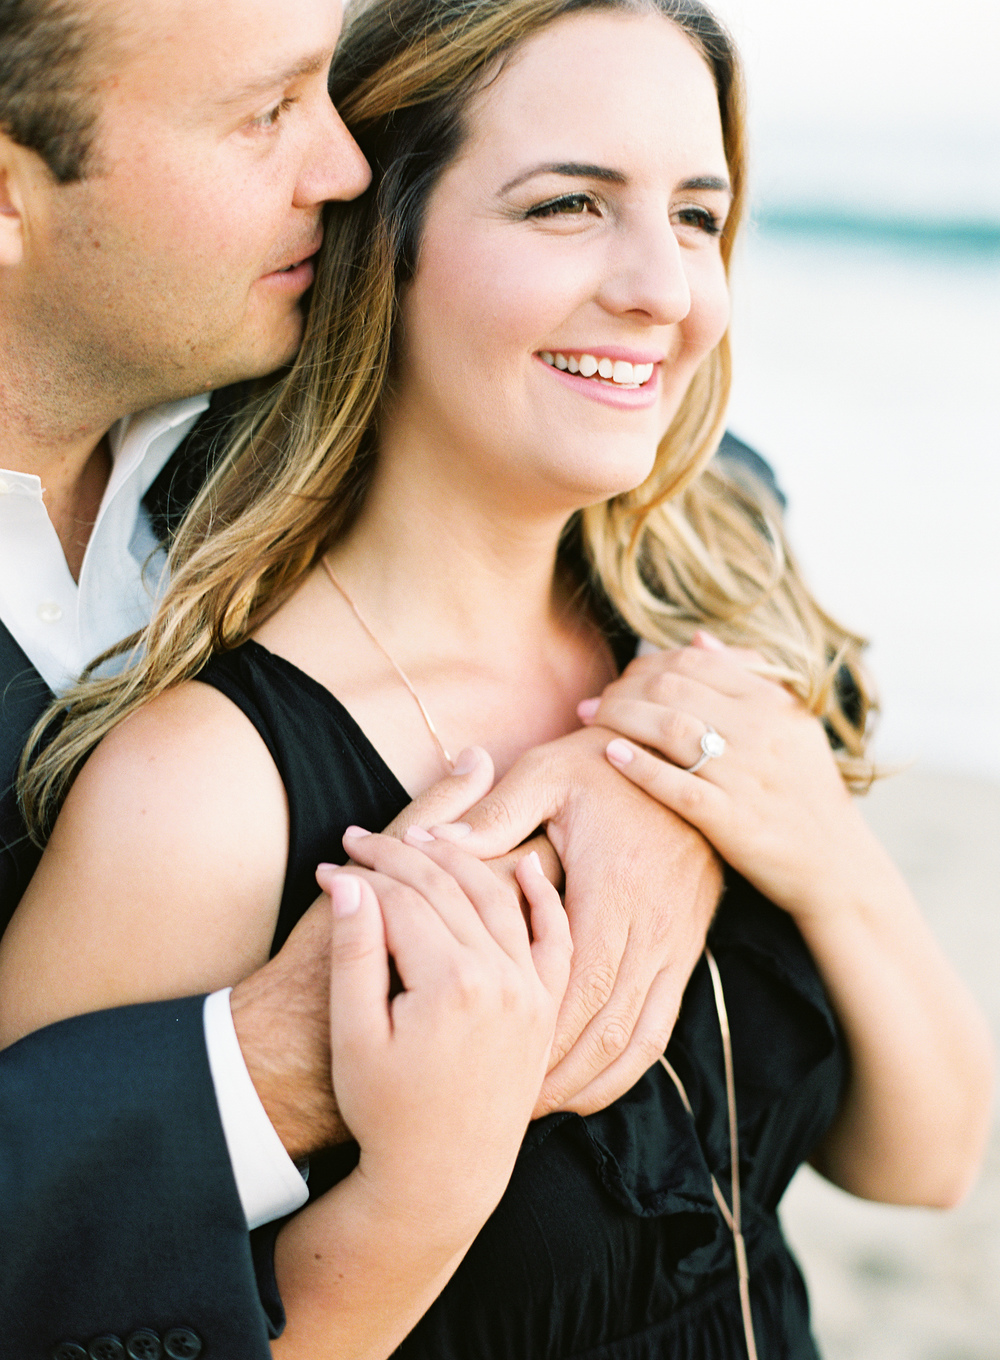 Laguna-Beach-Engagement-Film-Wedding-Orange-County-103.jpg